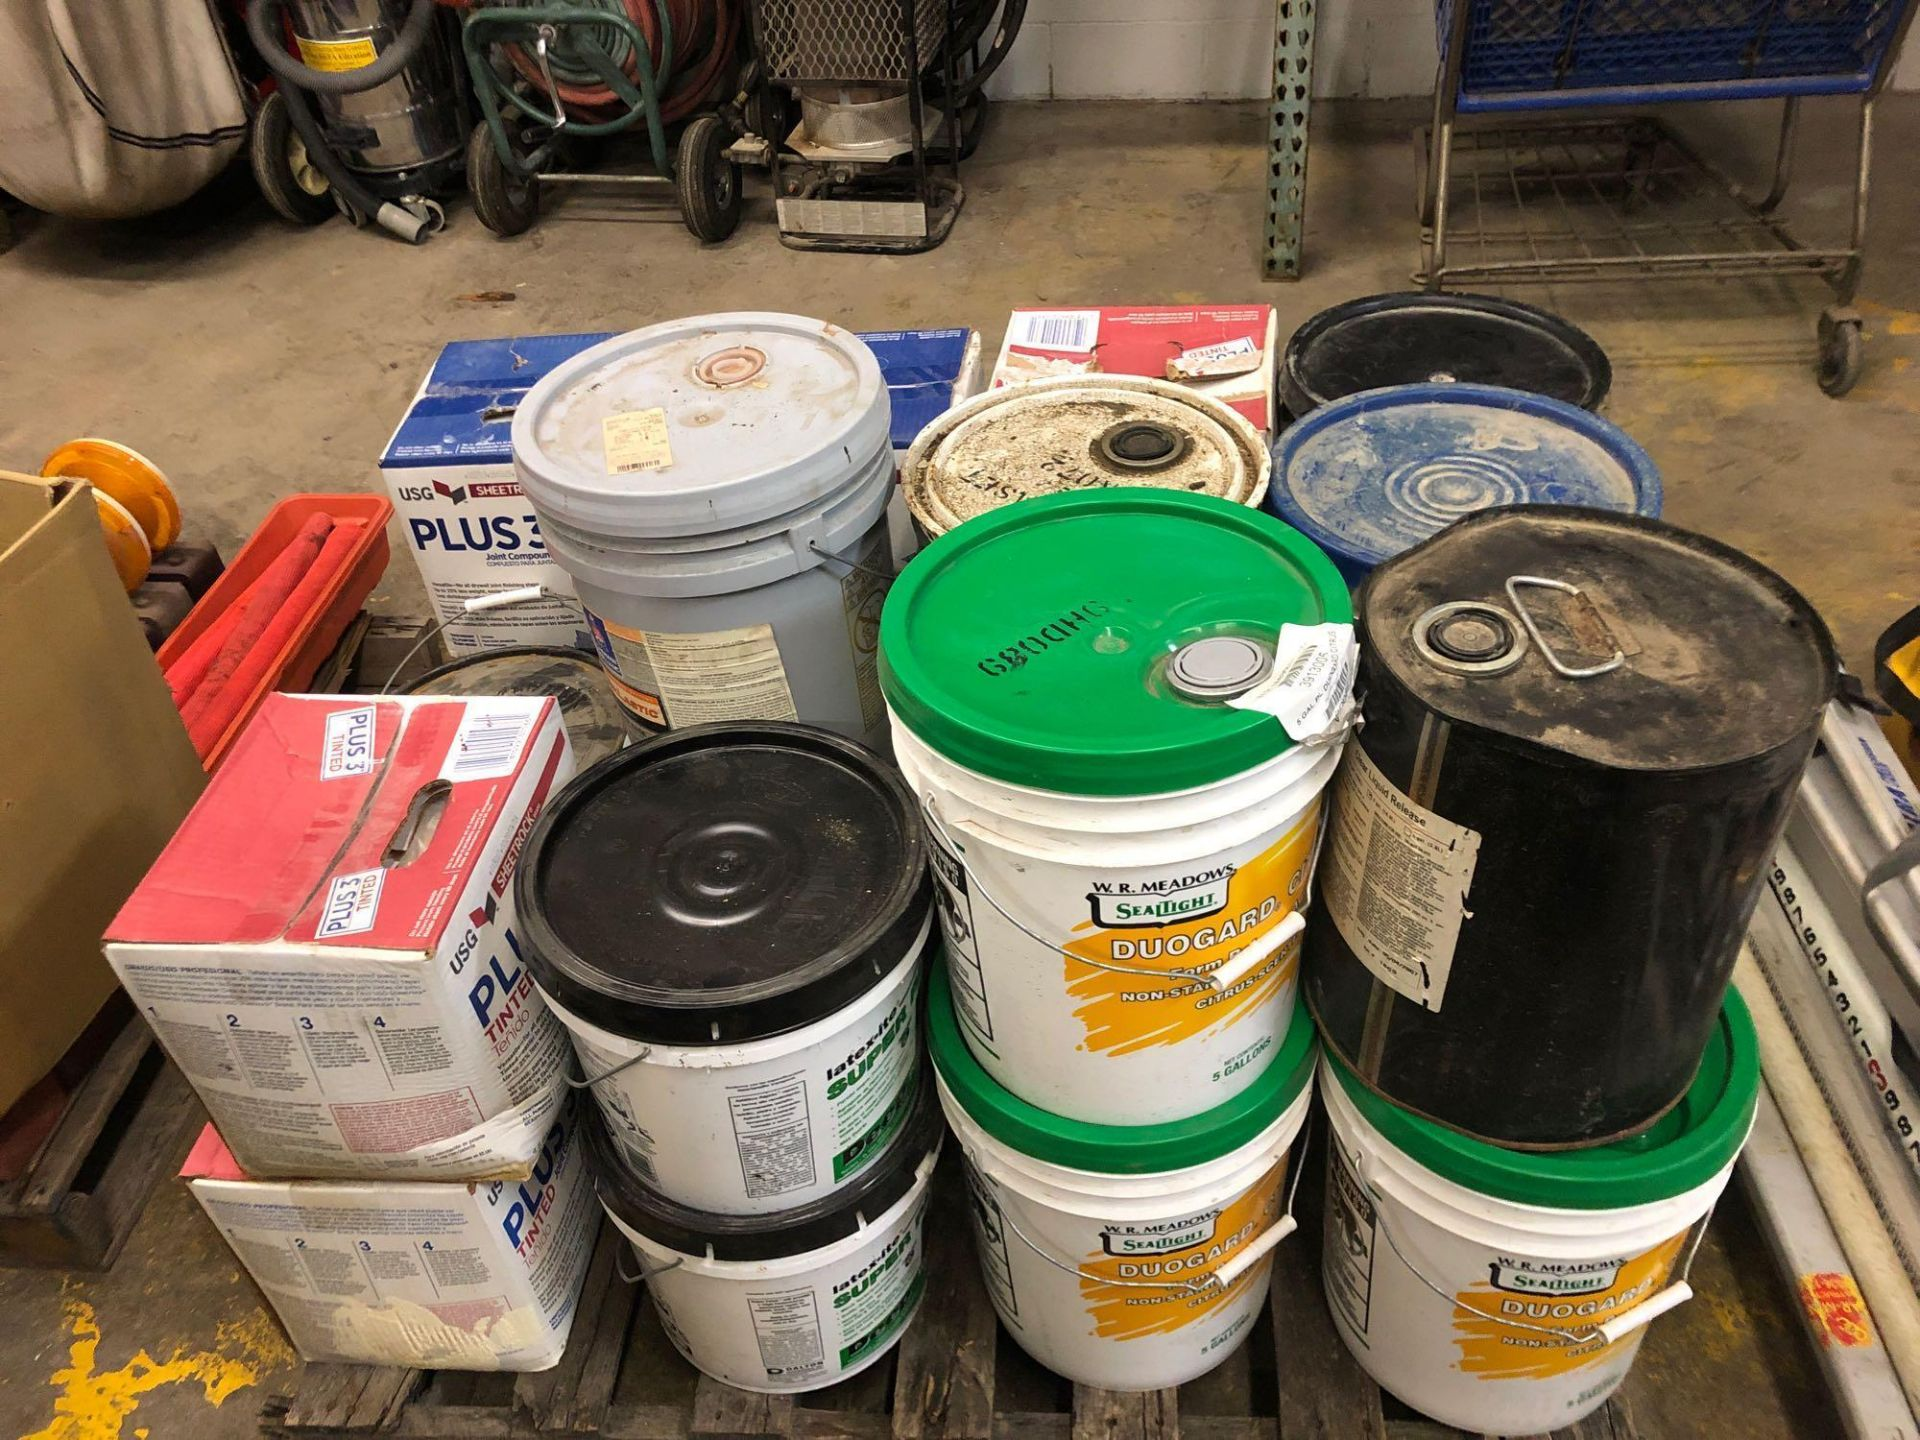 Lot 437 - Pallet of DuoGard Form Oil, Adhesive & Joint Compound